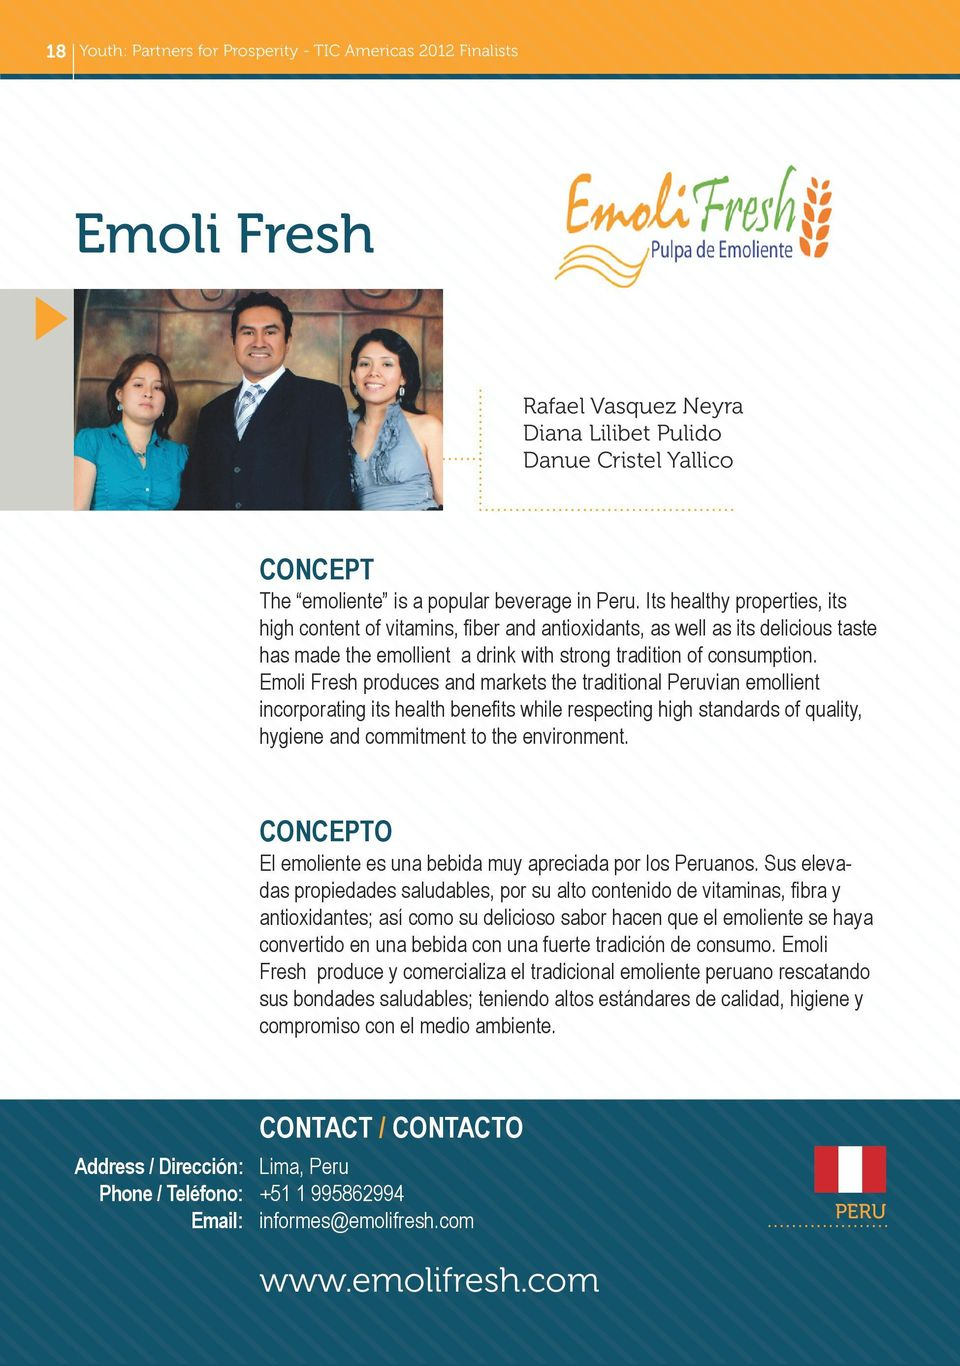 Emoli Fresh produces and markets the traditional Peruvian emollient incorporating its health benefits while respecting high standards of quality, hygiene and commitment to the environment.